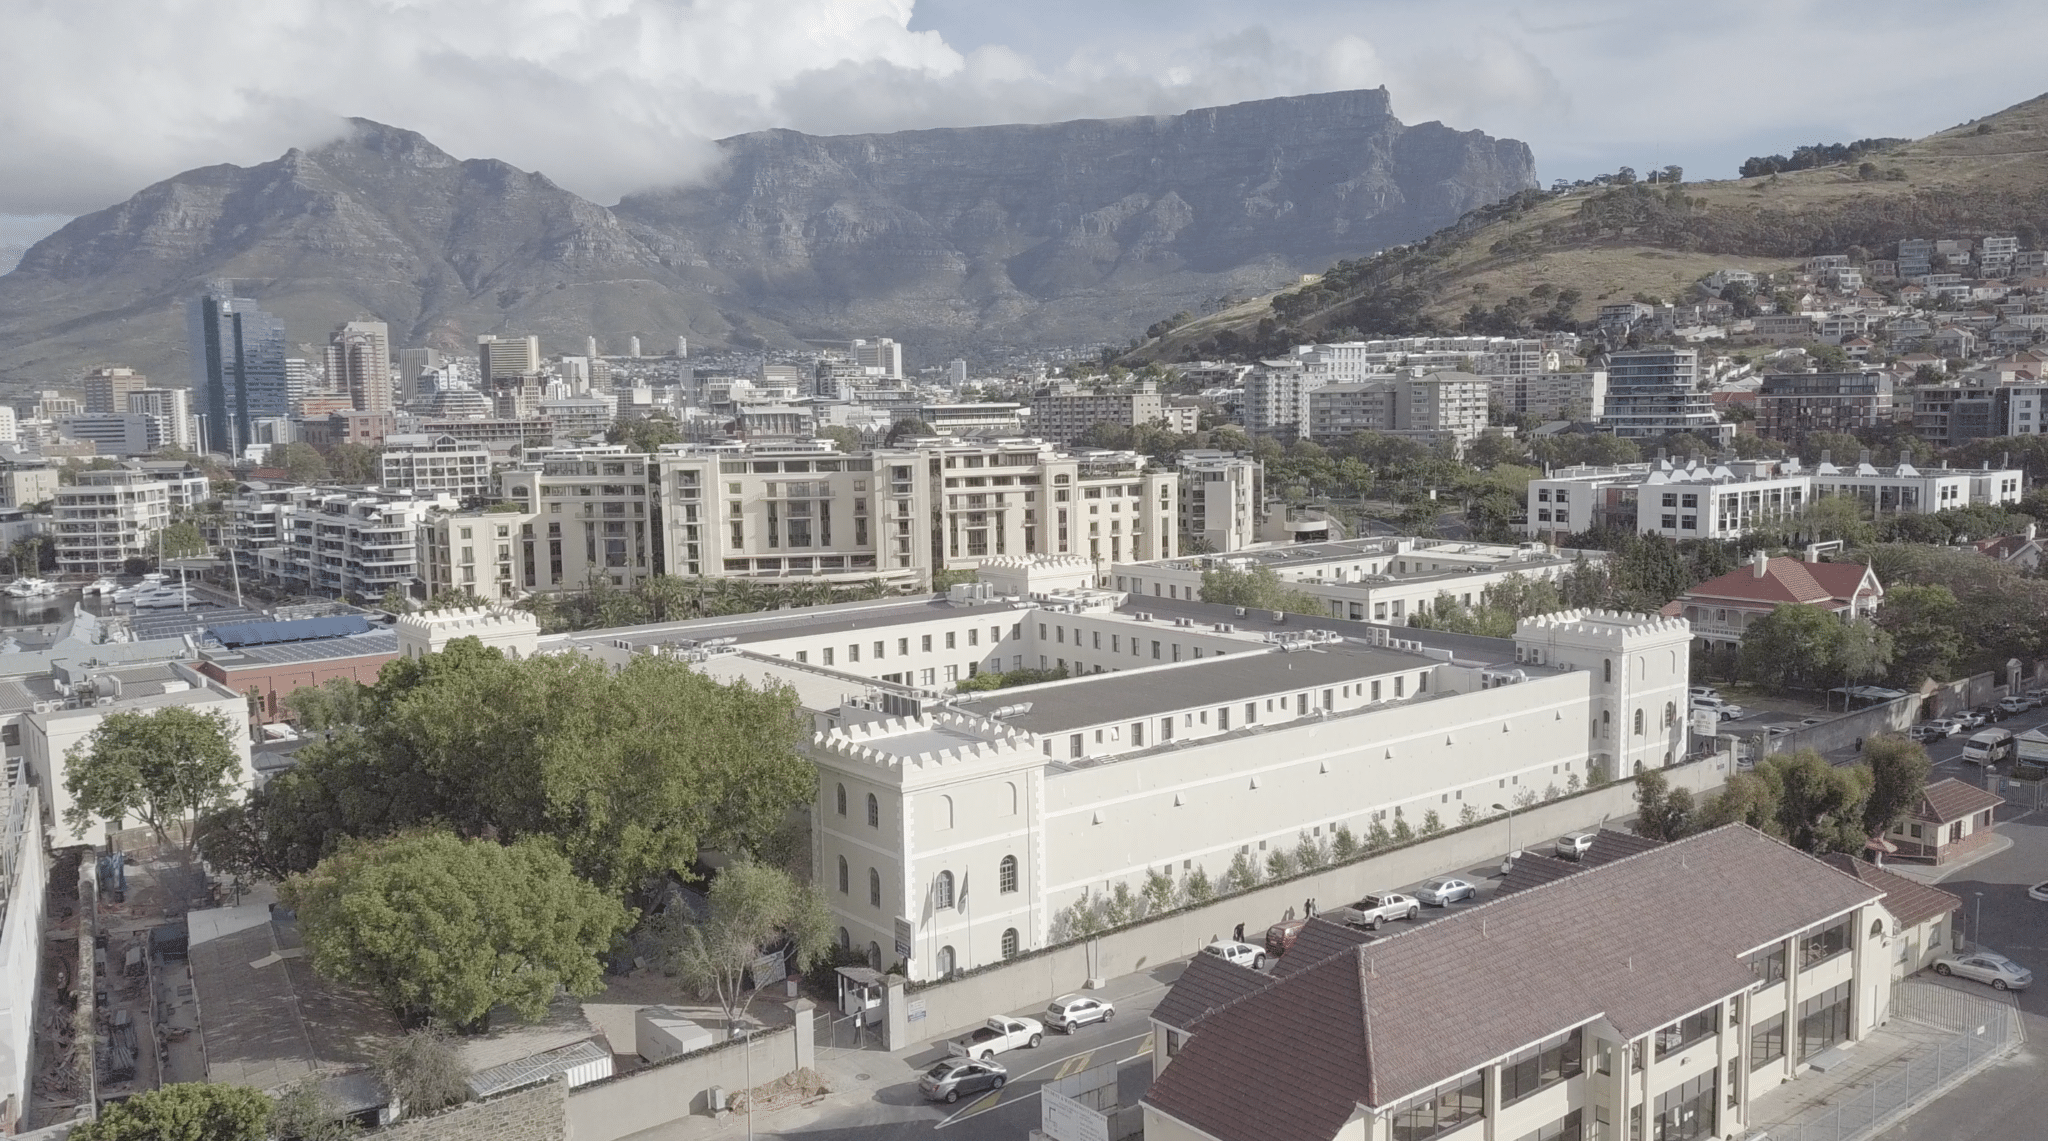 UCT GSB – Table Mountain